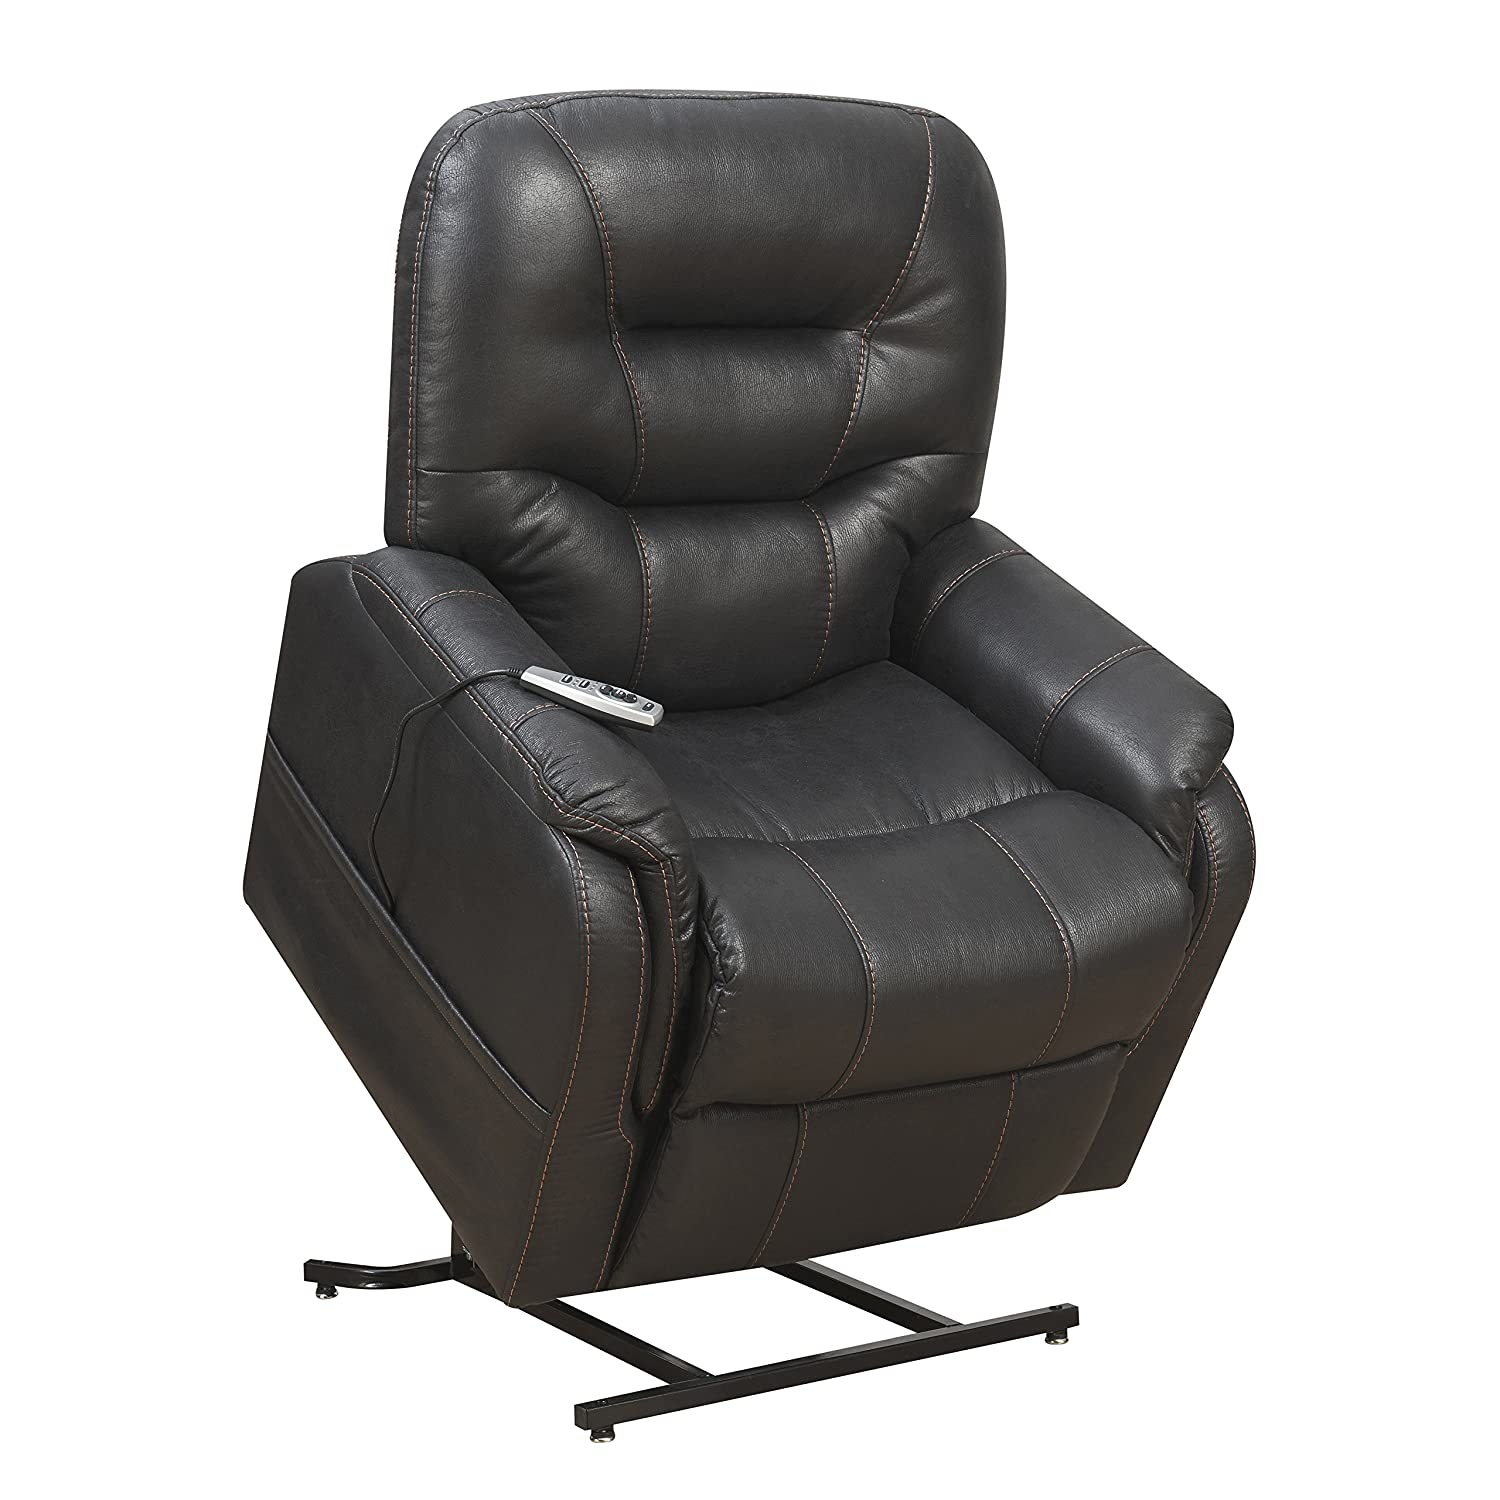 Amazon.com Pulaski Heat Massage Lift Chair in CHARCOAL black Kitchen u0026 Dining  sc 1 st  Amazon.com : handicap lift recliners - islam-shia.org